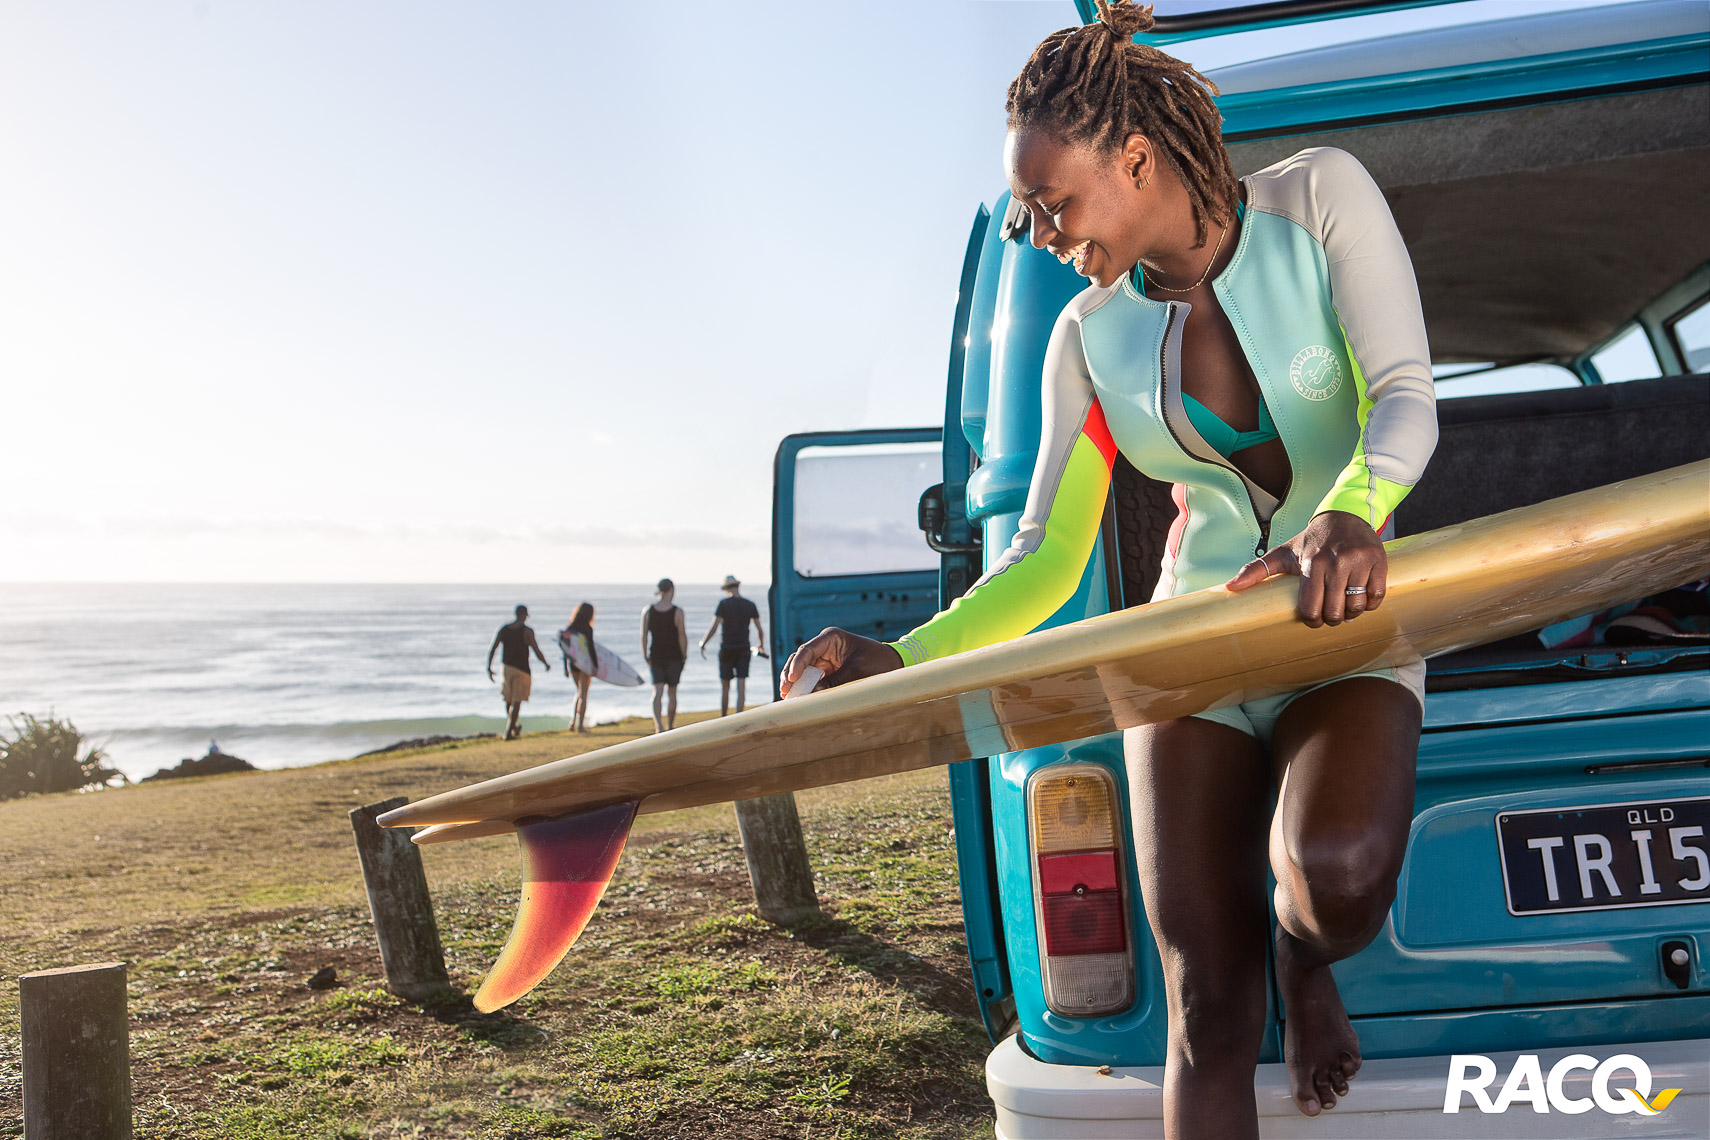 an african girl waxing up her surfboard in Sydney